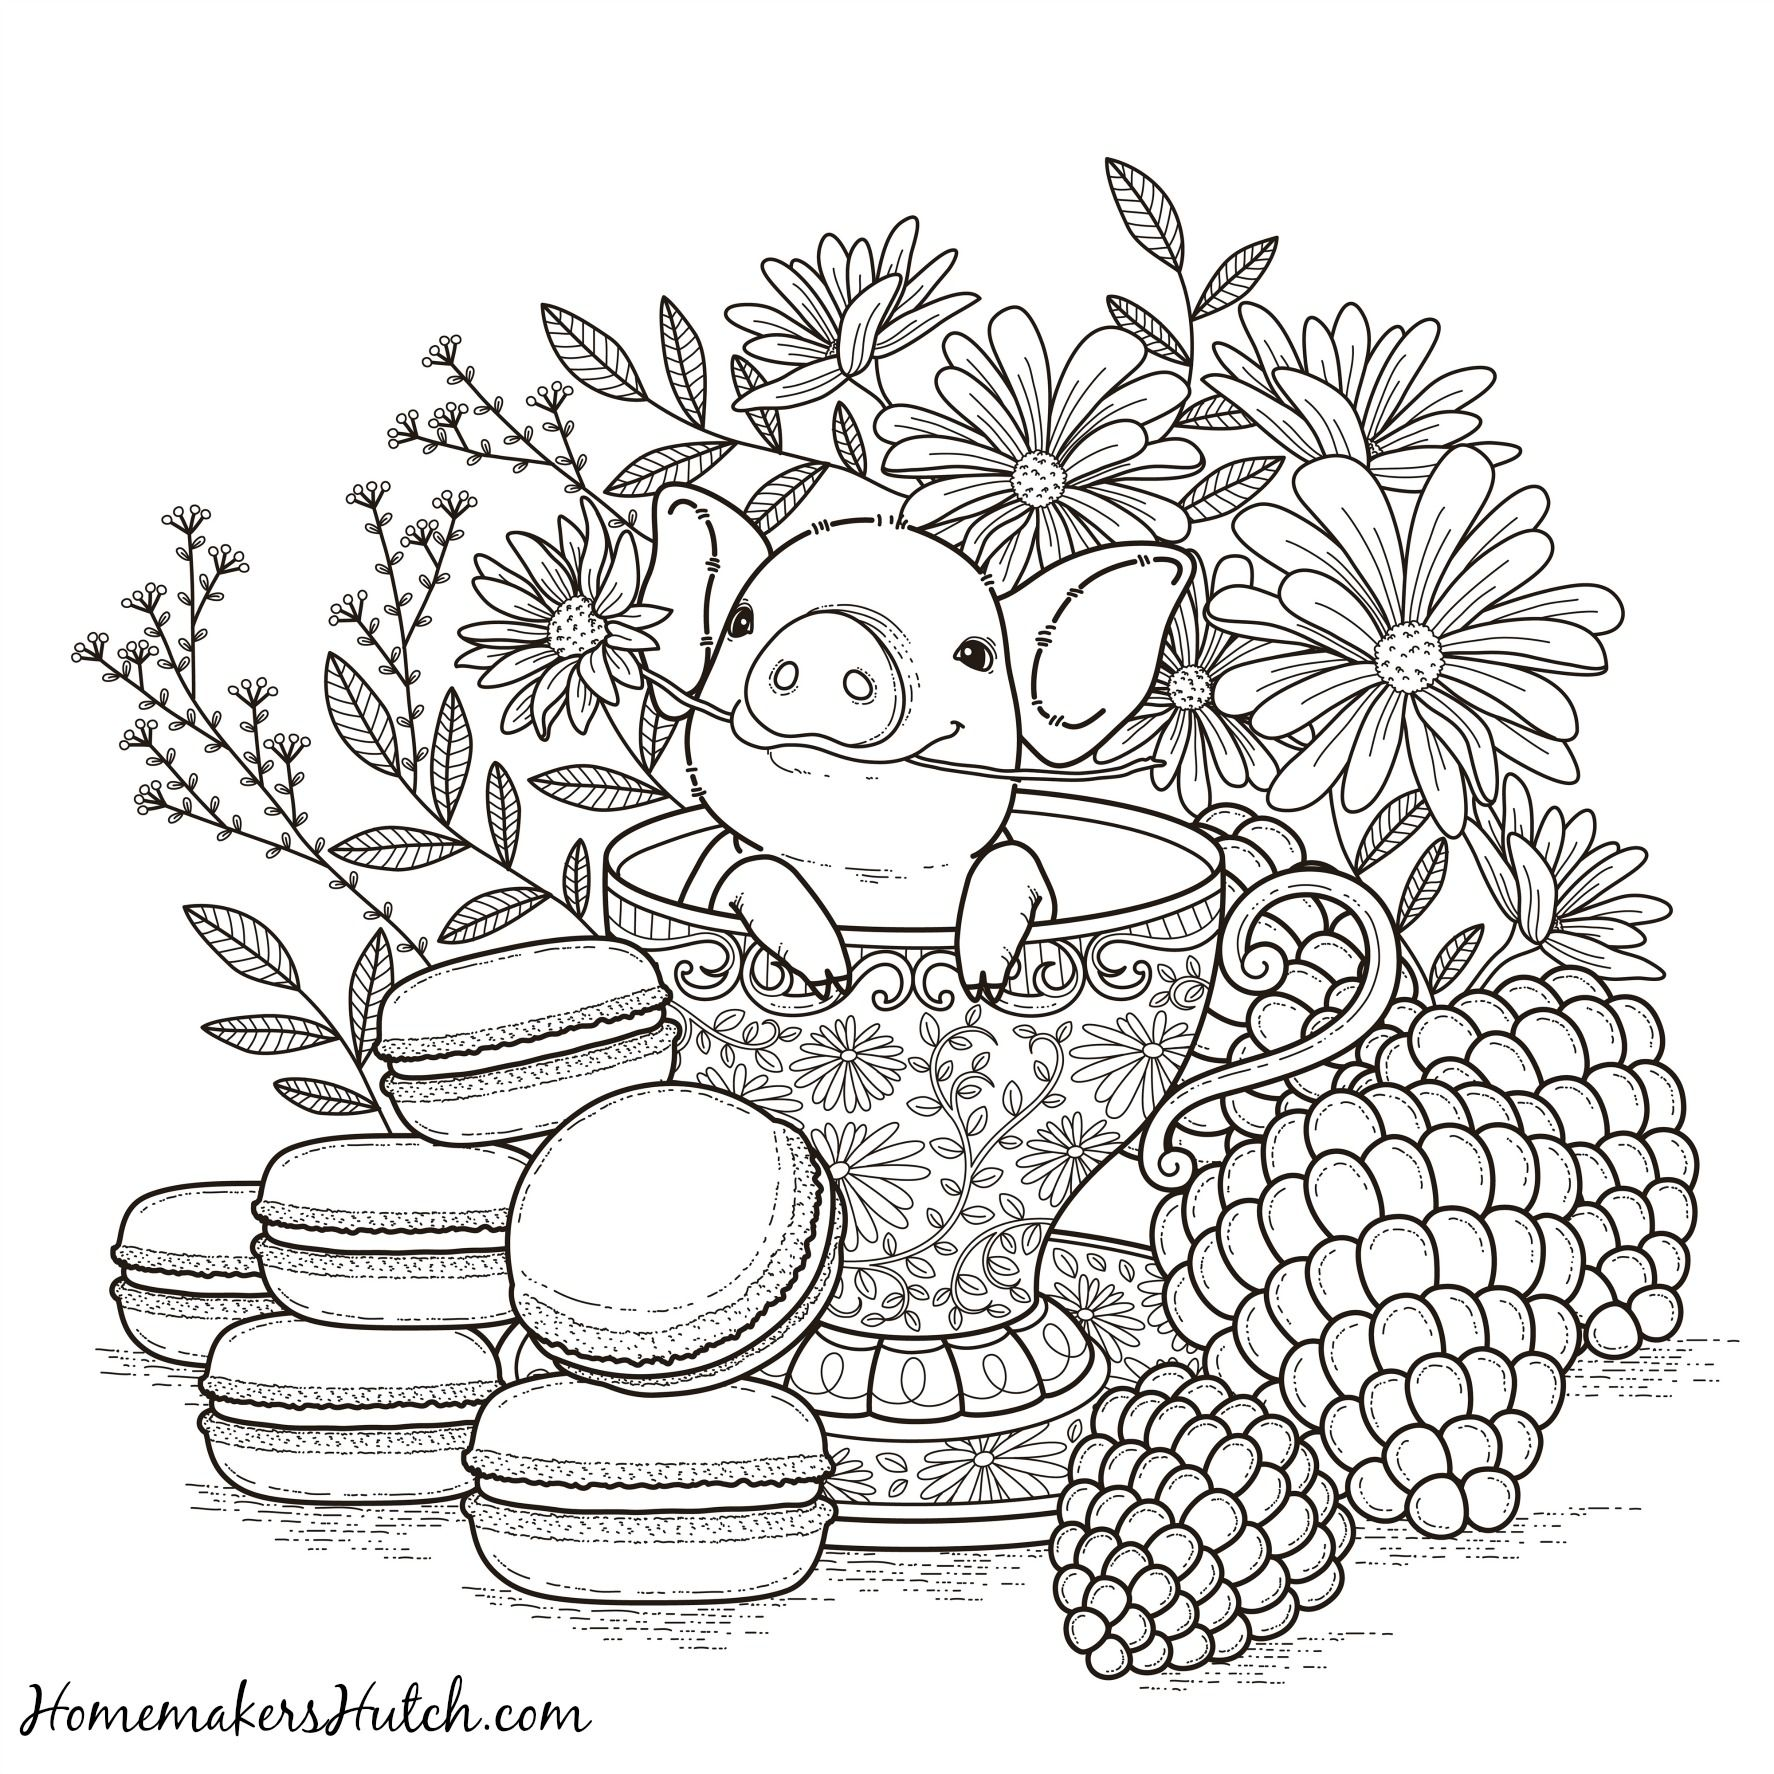 Tea Cup Pig Coloring Pages Coloring Books Animal Coloring Pages